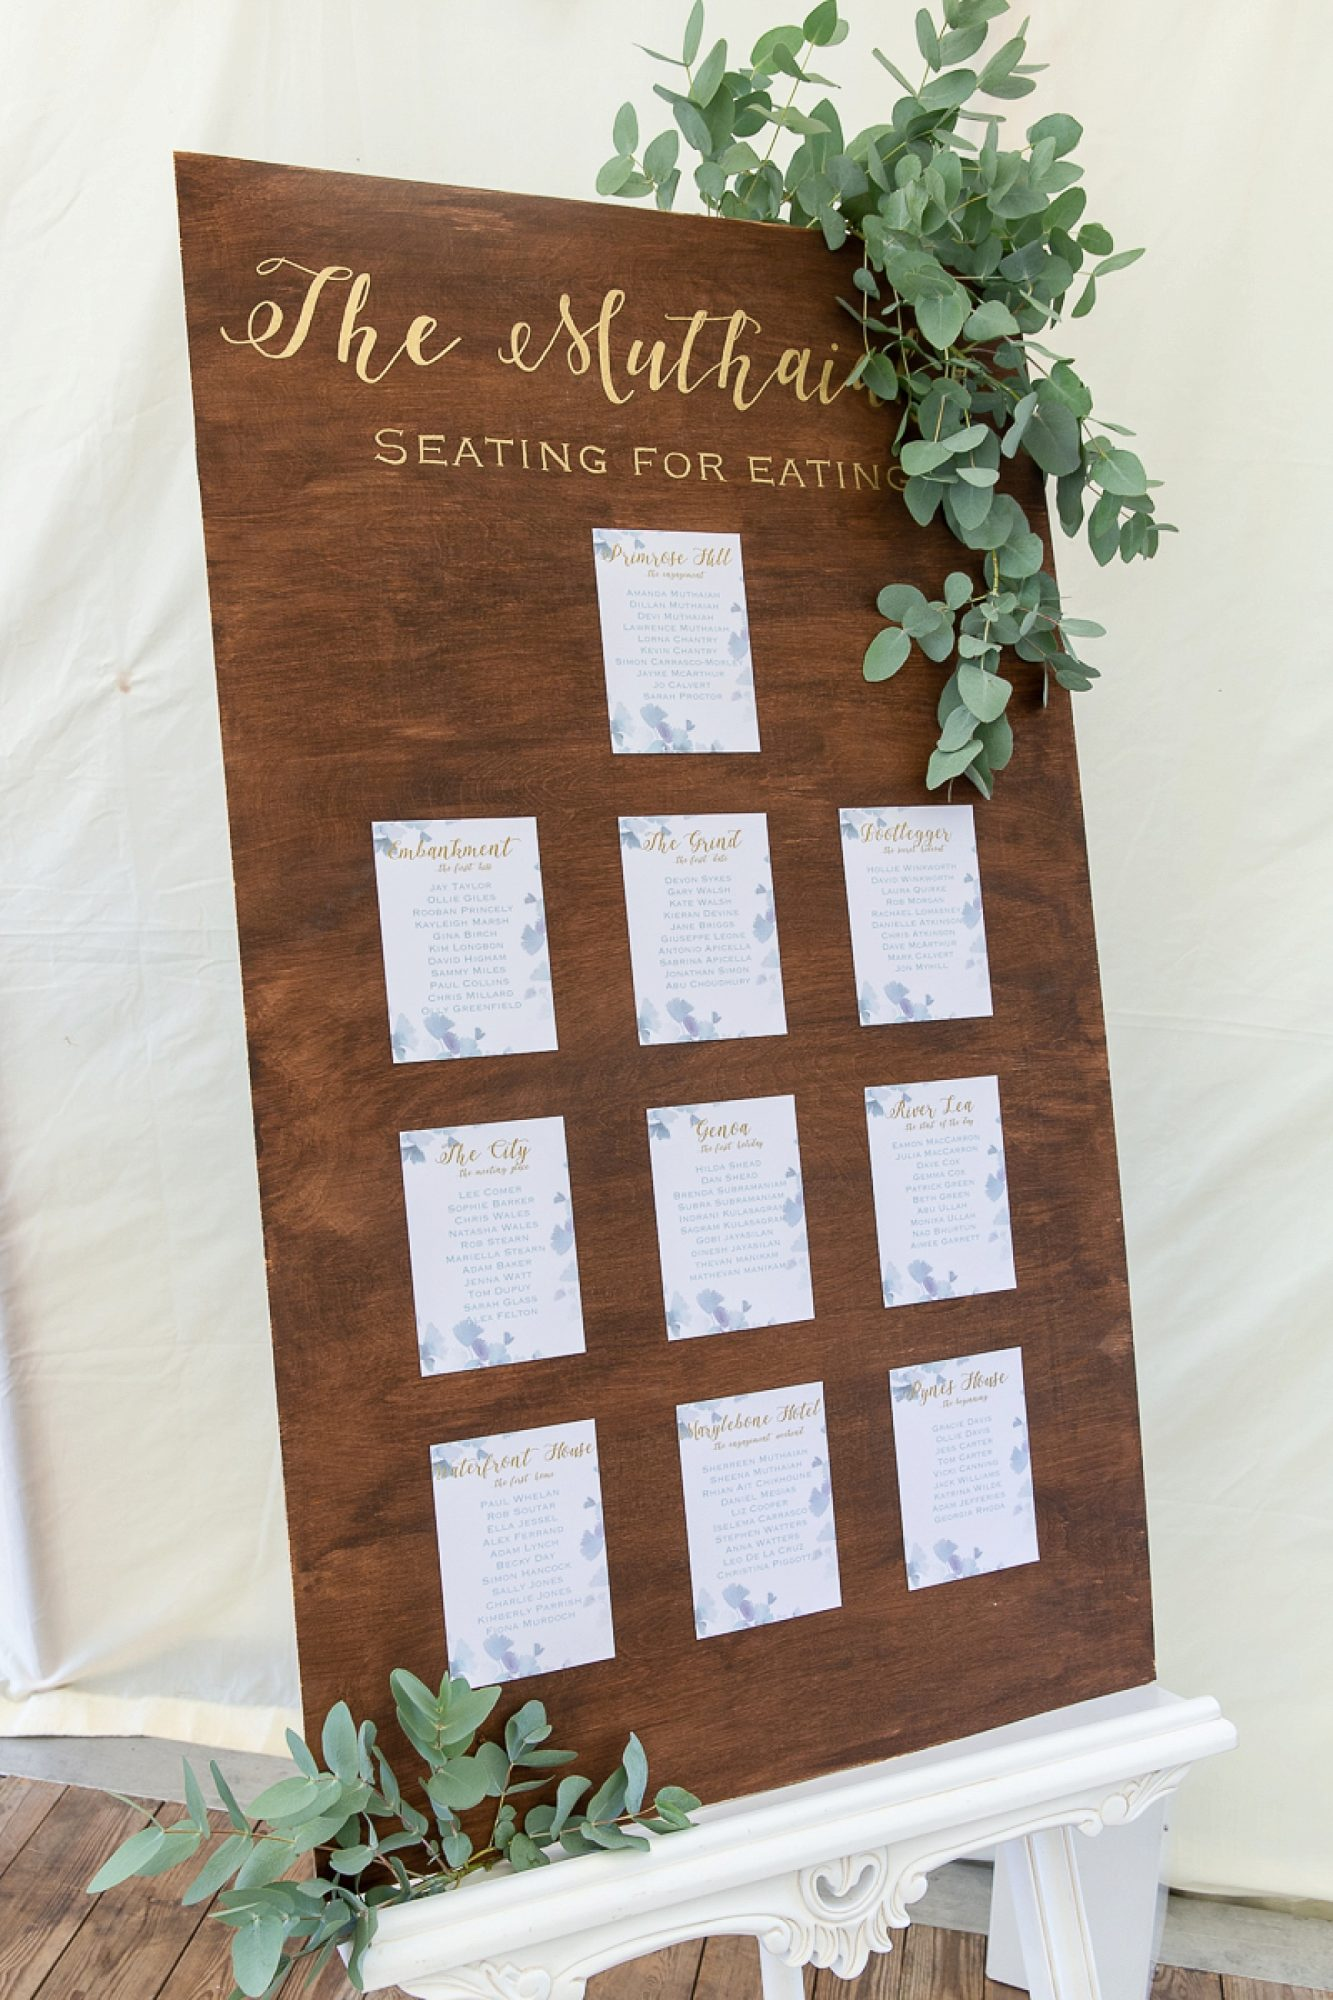 Dark wooden table plan with eucalyptus leaf hanging down on the right side